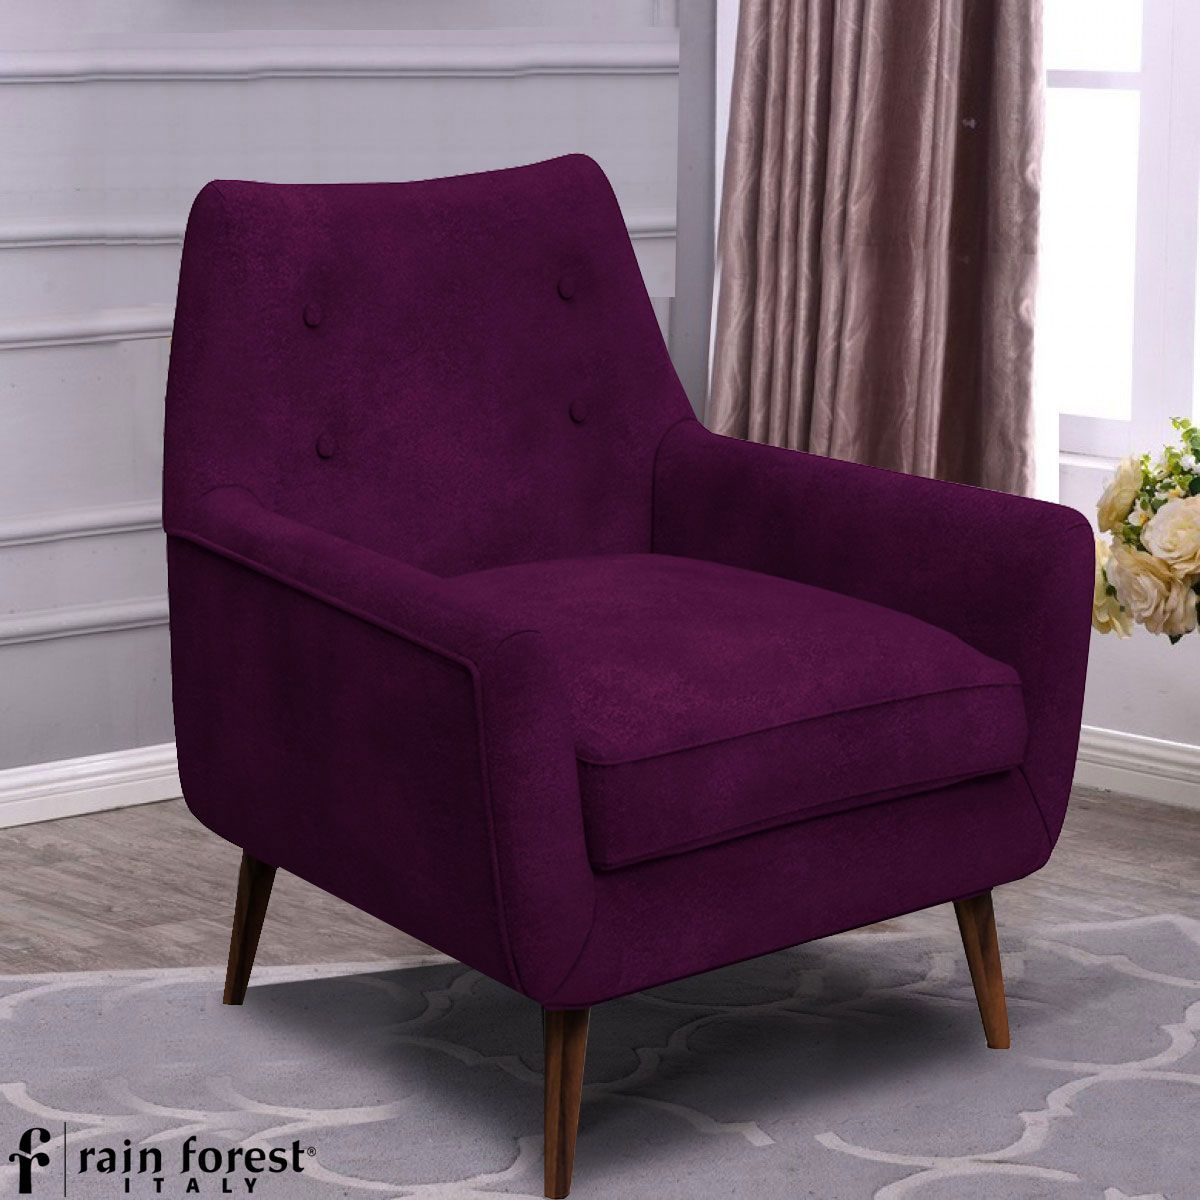 chair designs, designer chairs, accent chair, accent chair ...